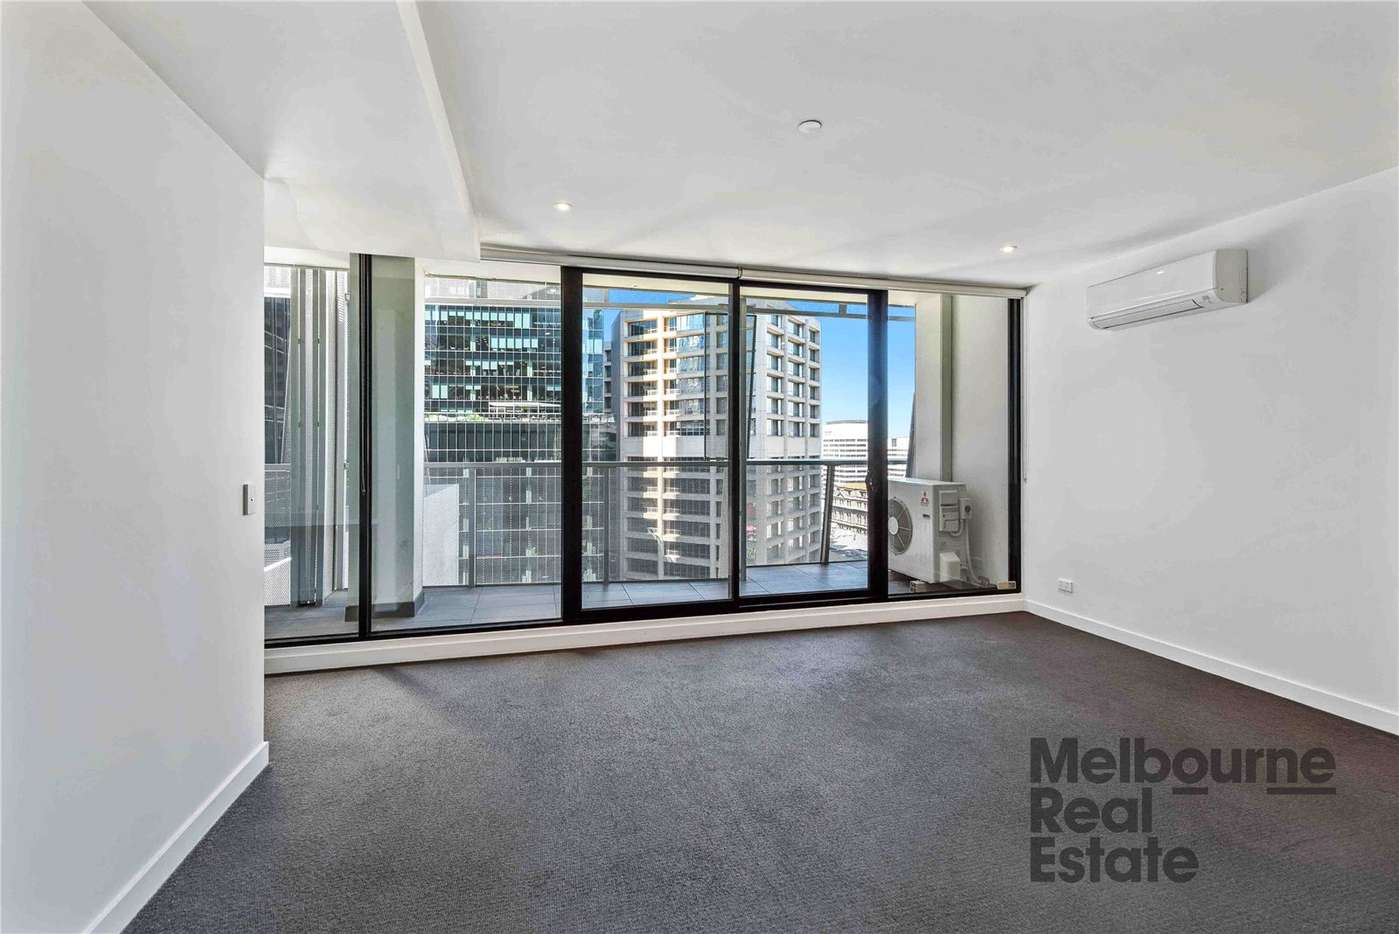 Main view of Homely apartment listing, 1210/601 Little Collins Street, Melbourne, VIC 3000